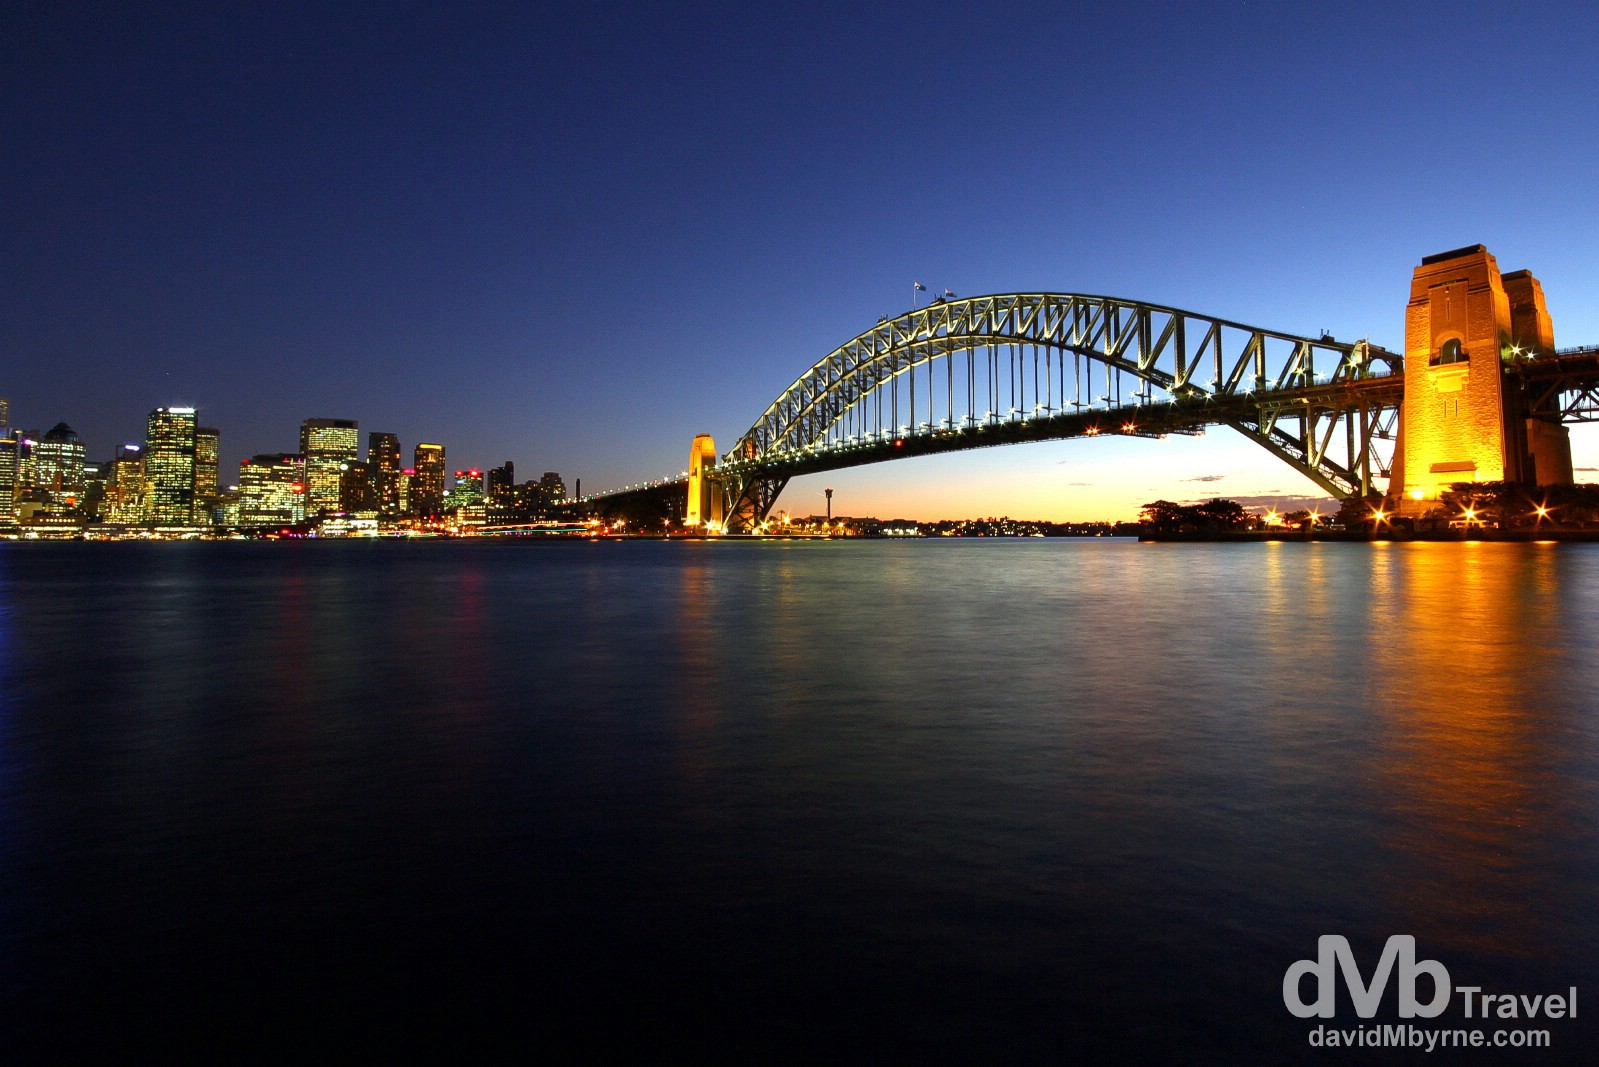 The Sydney Harbour Bridge & CBD skyline at dusk as seen from the Kirribilli district of the city. June 7th 2012.